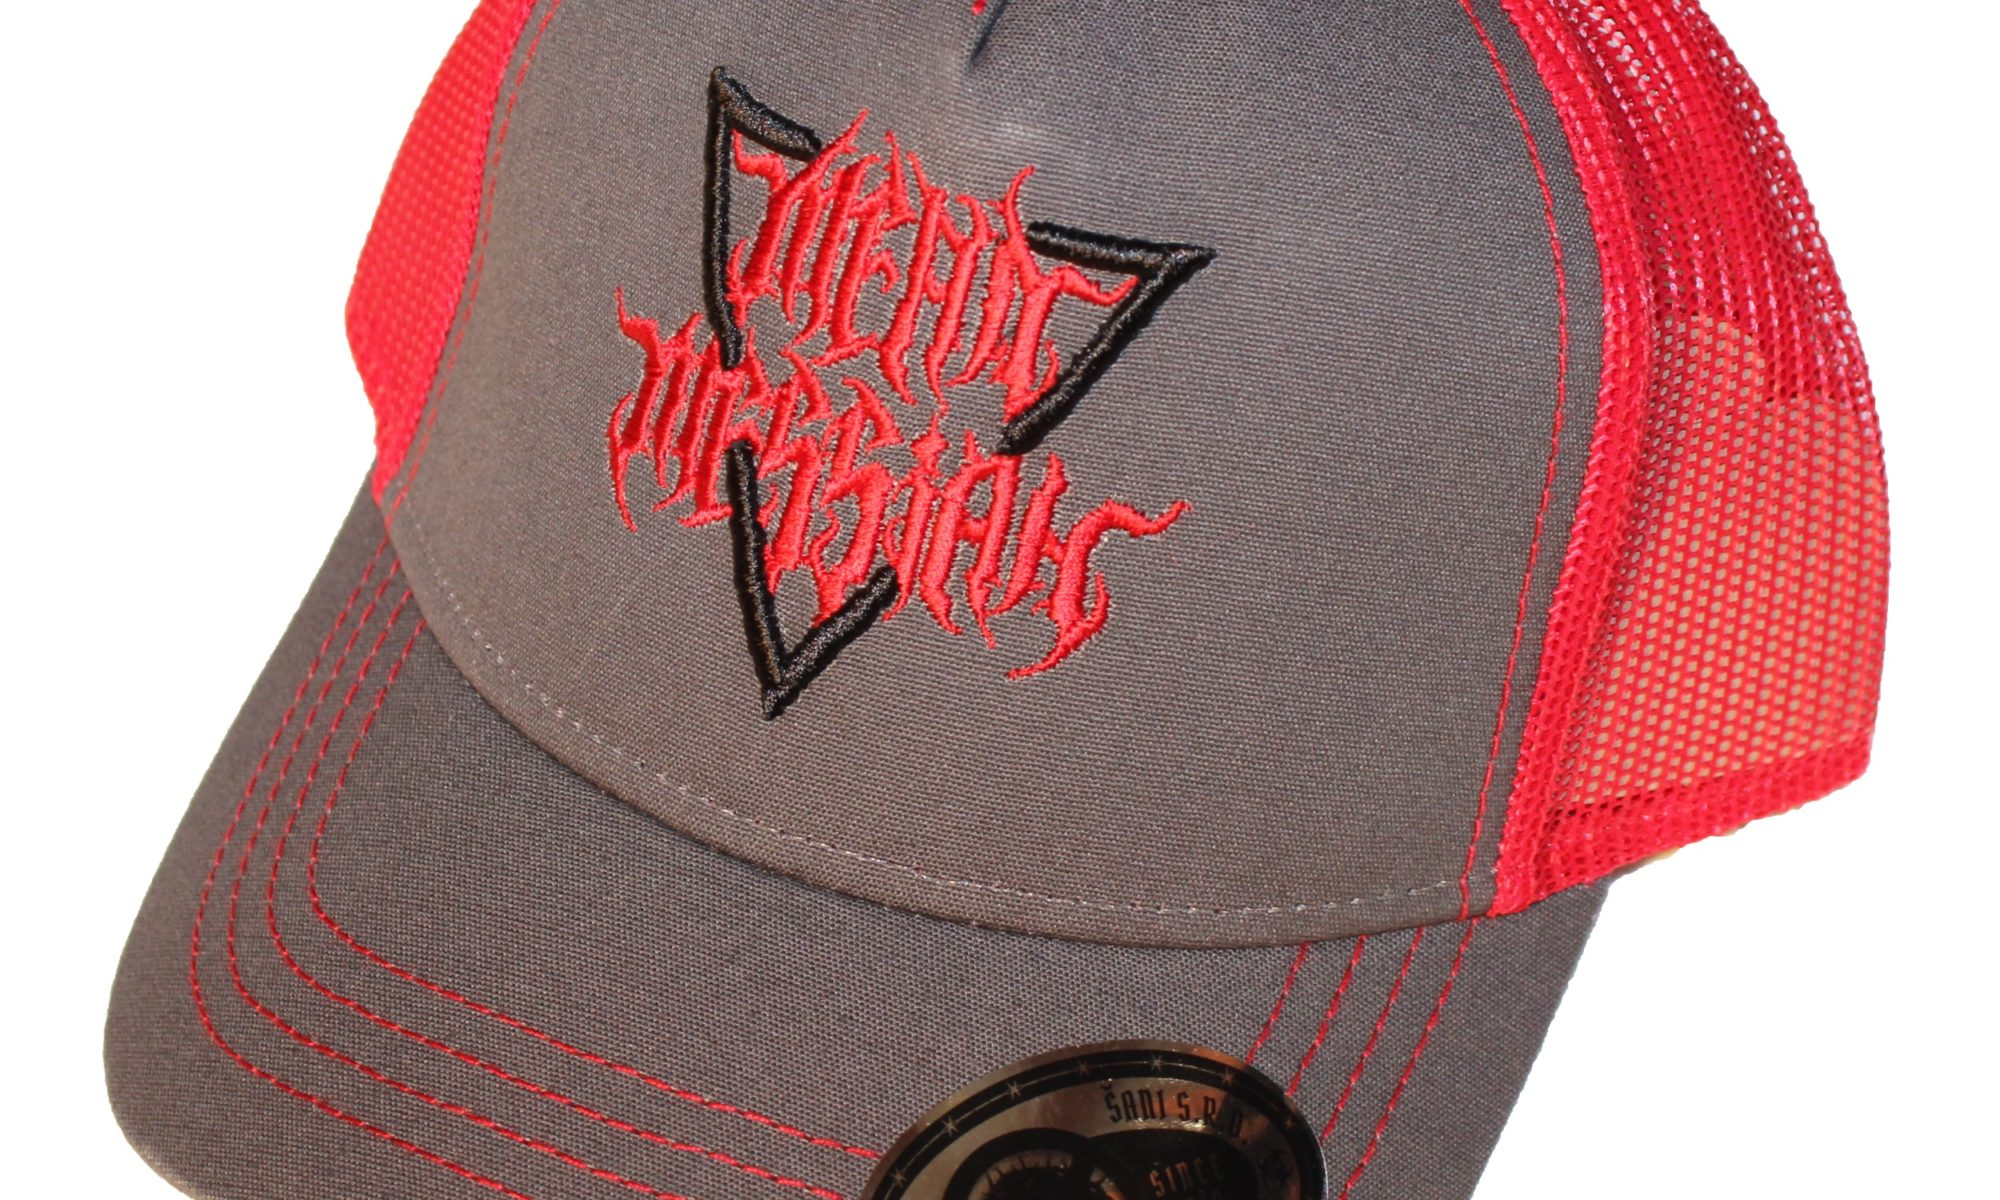 Trucker hat Gray Red with 3D Black Red Mean Messiah logo